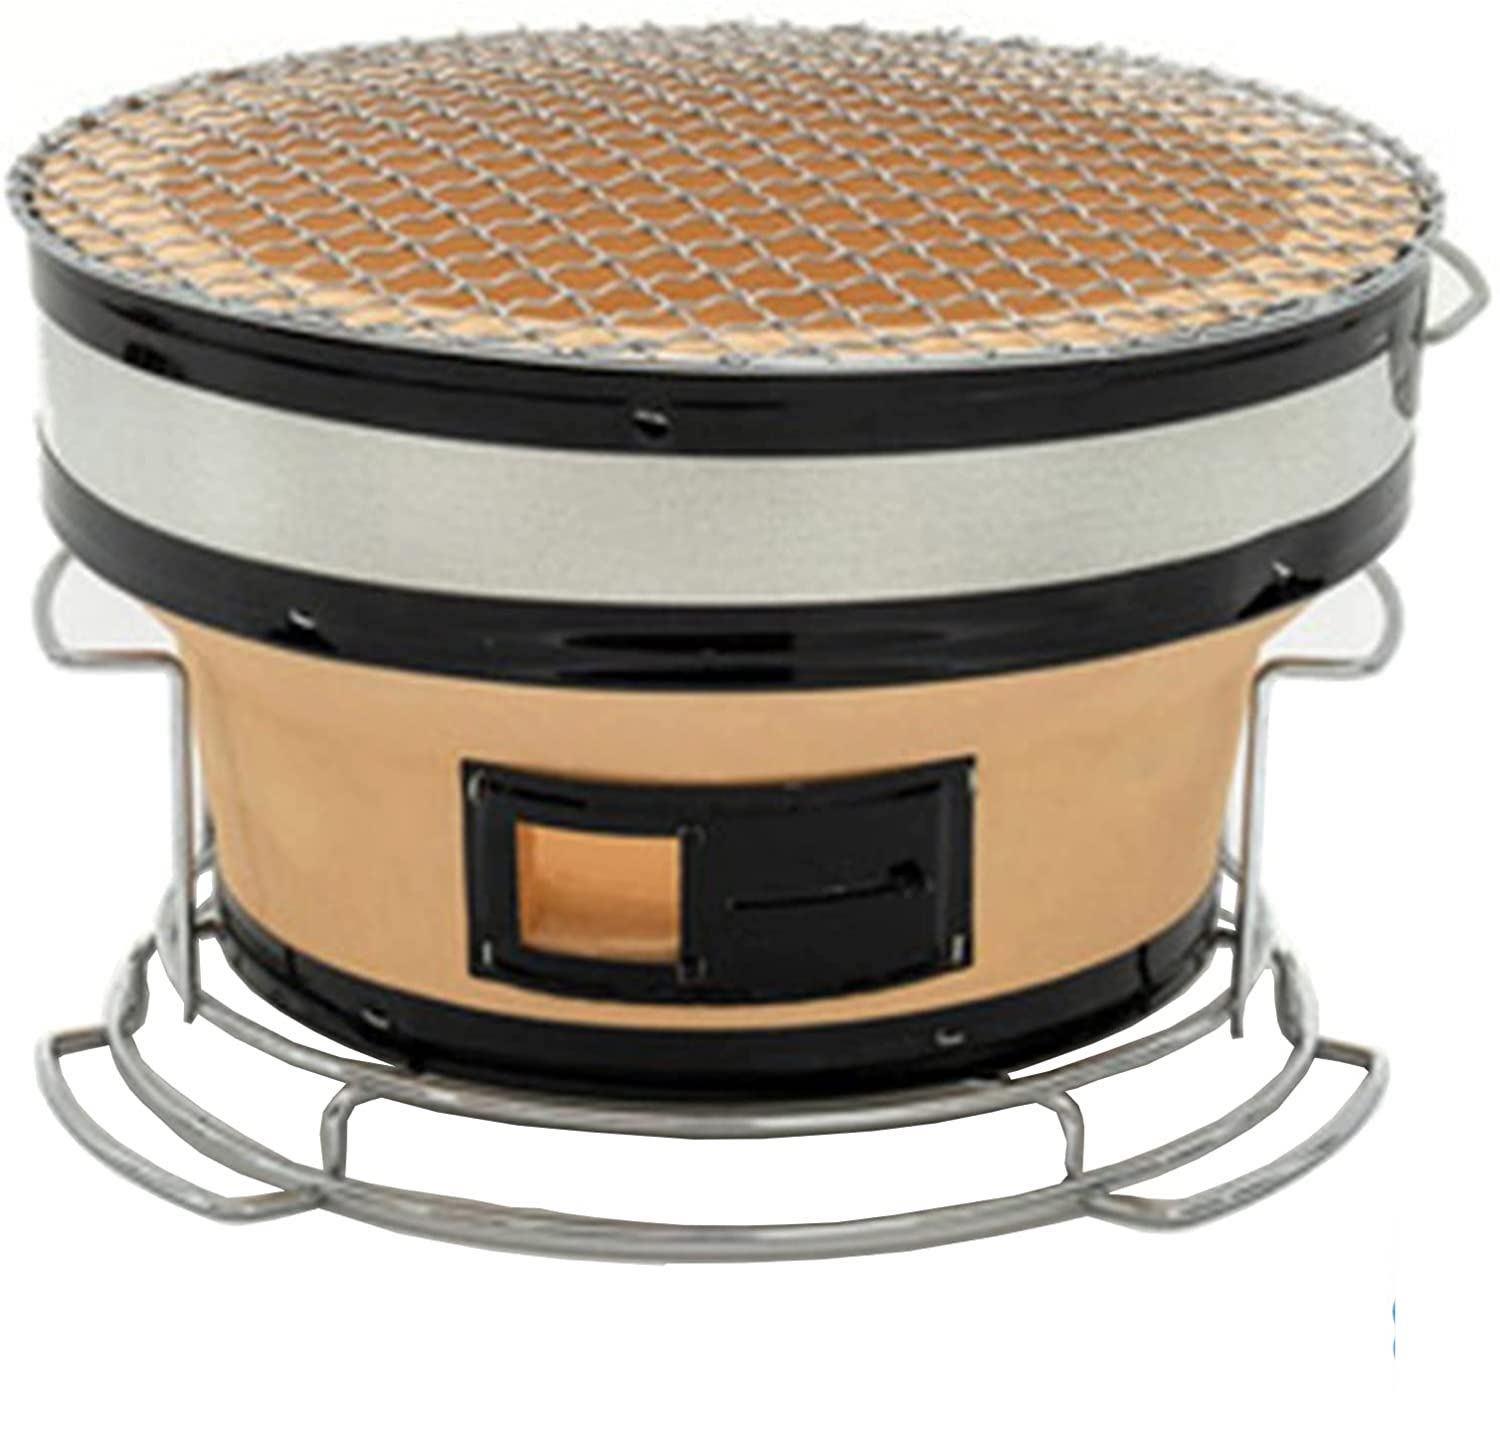 Best portable Japanese tabletop charcoal hibachi grill- ADIMA Japanese Ceramic Clay Grill